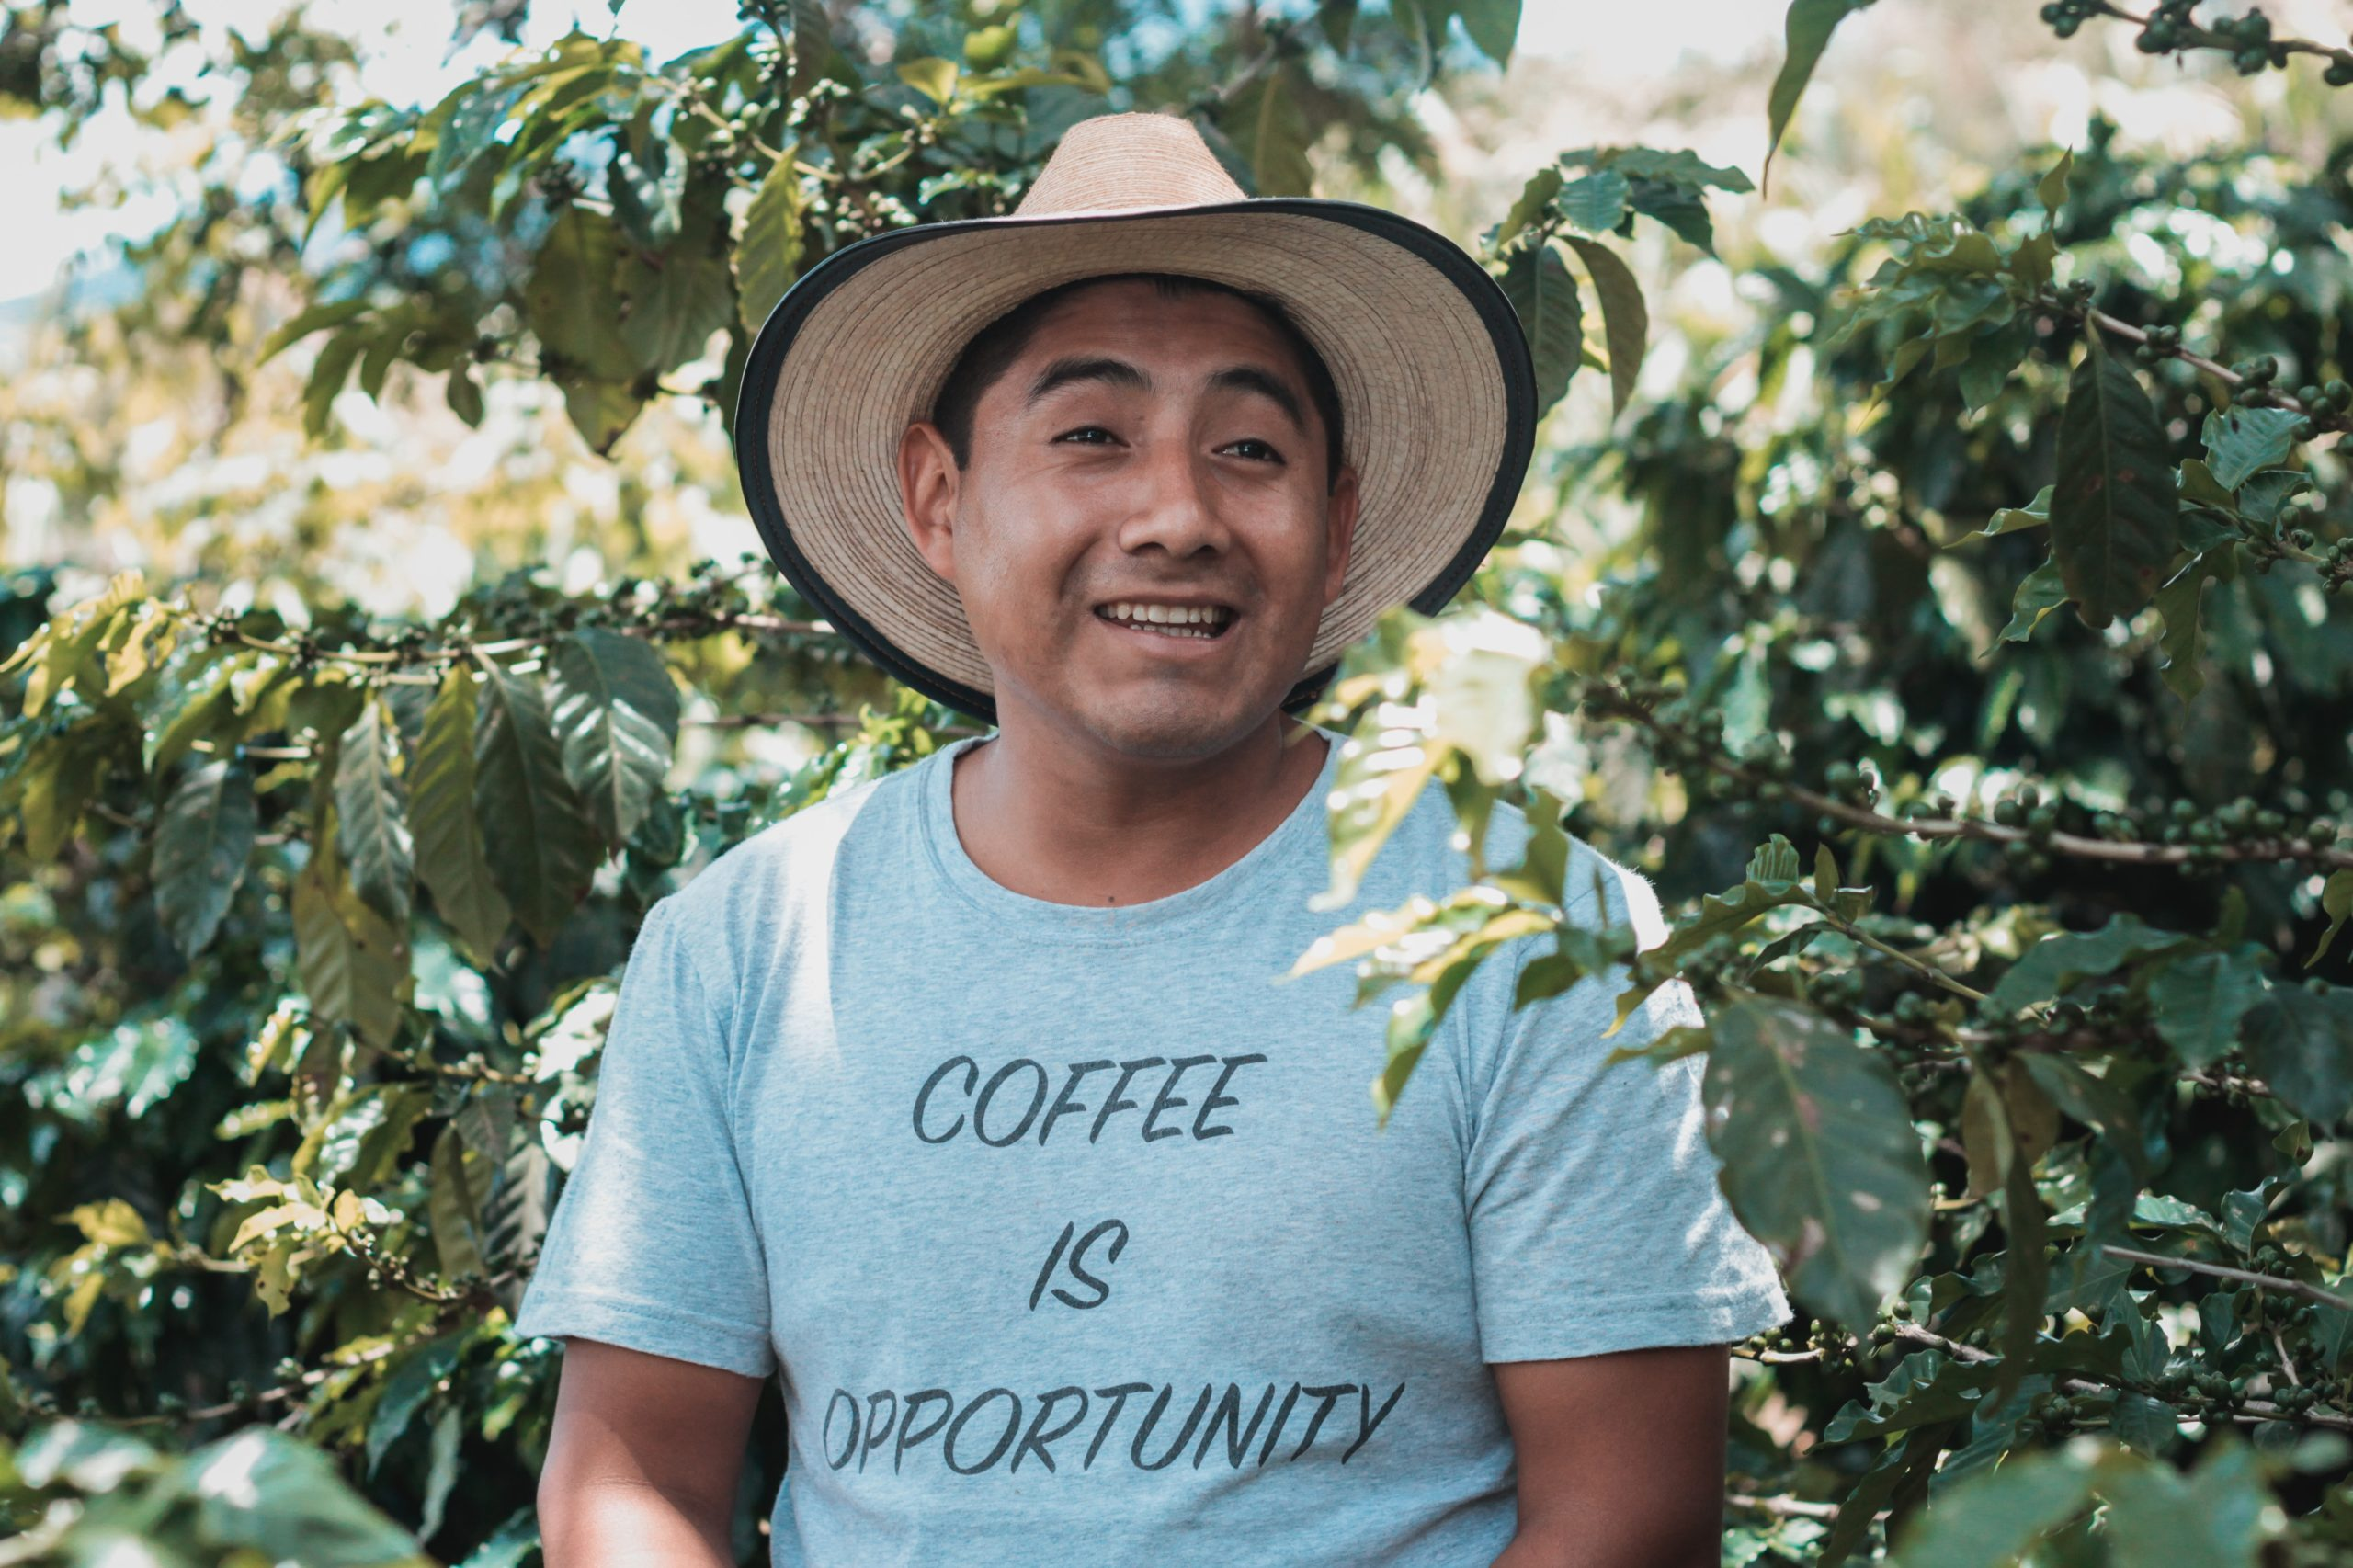 a coffee farmer sitting next to a plant